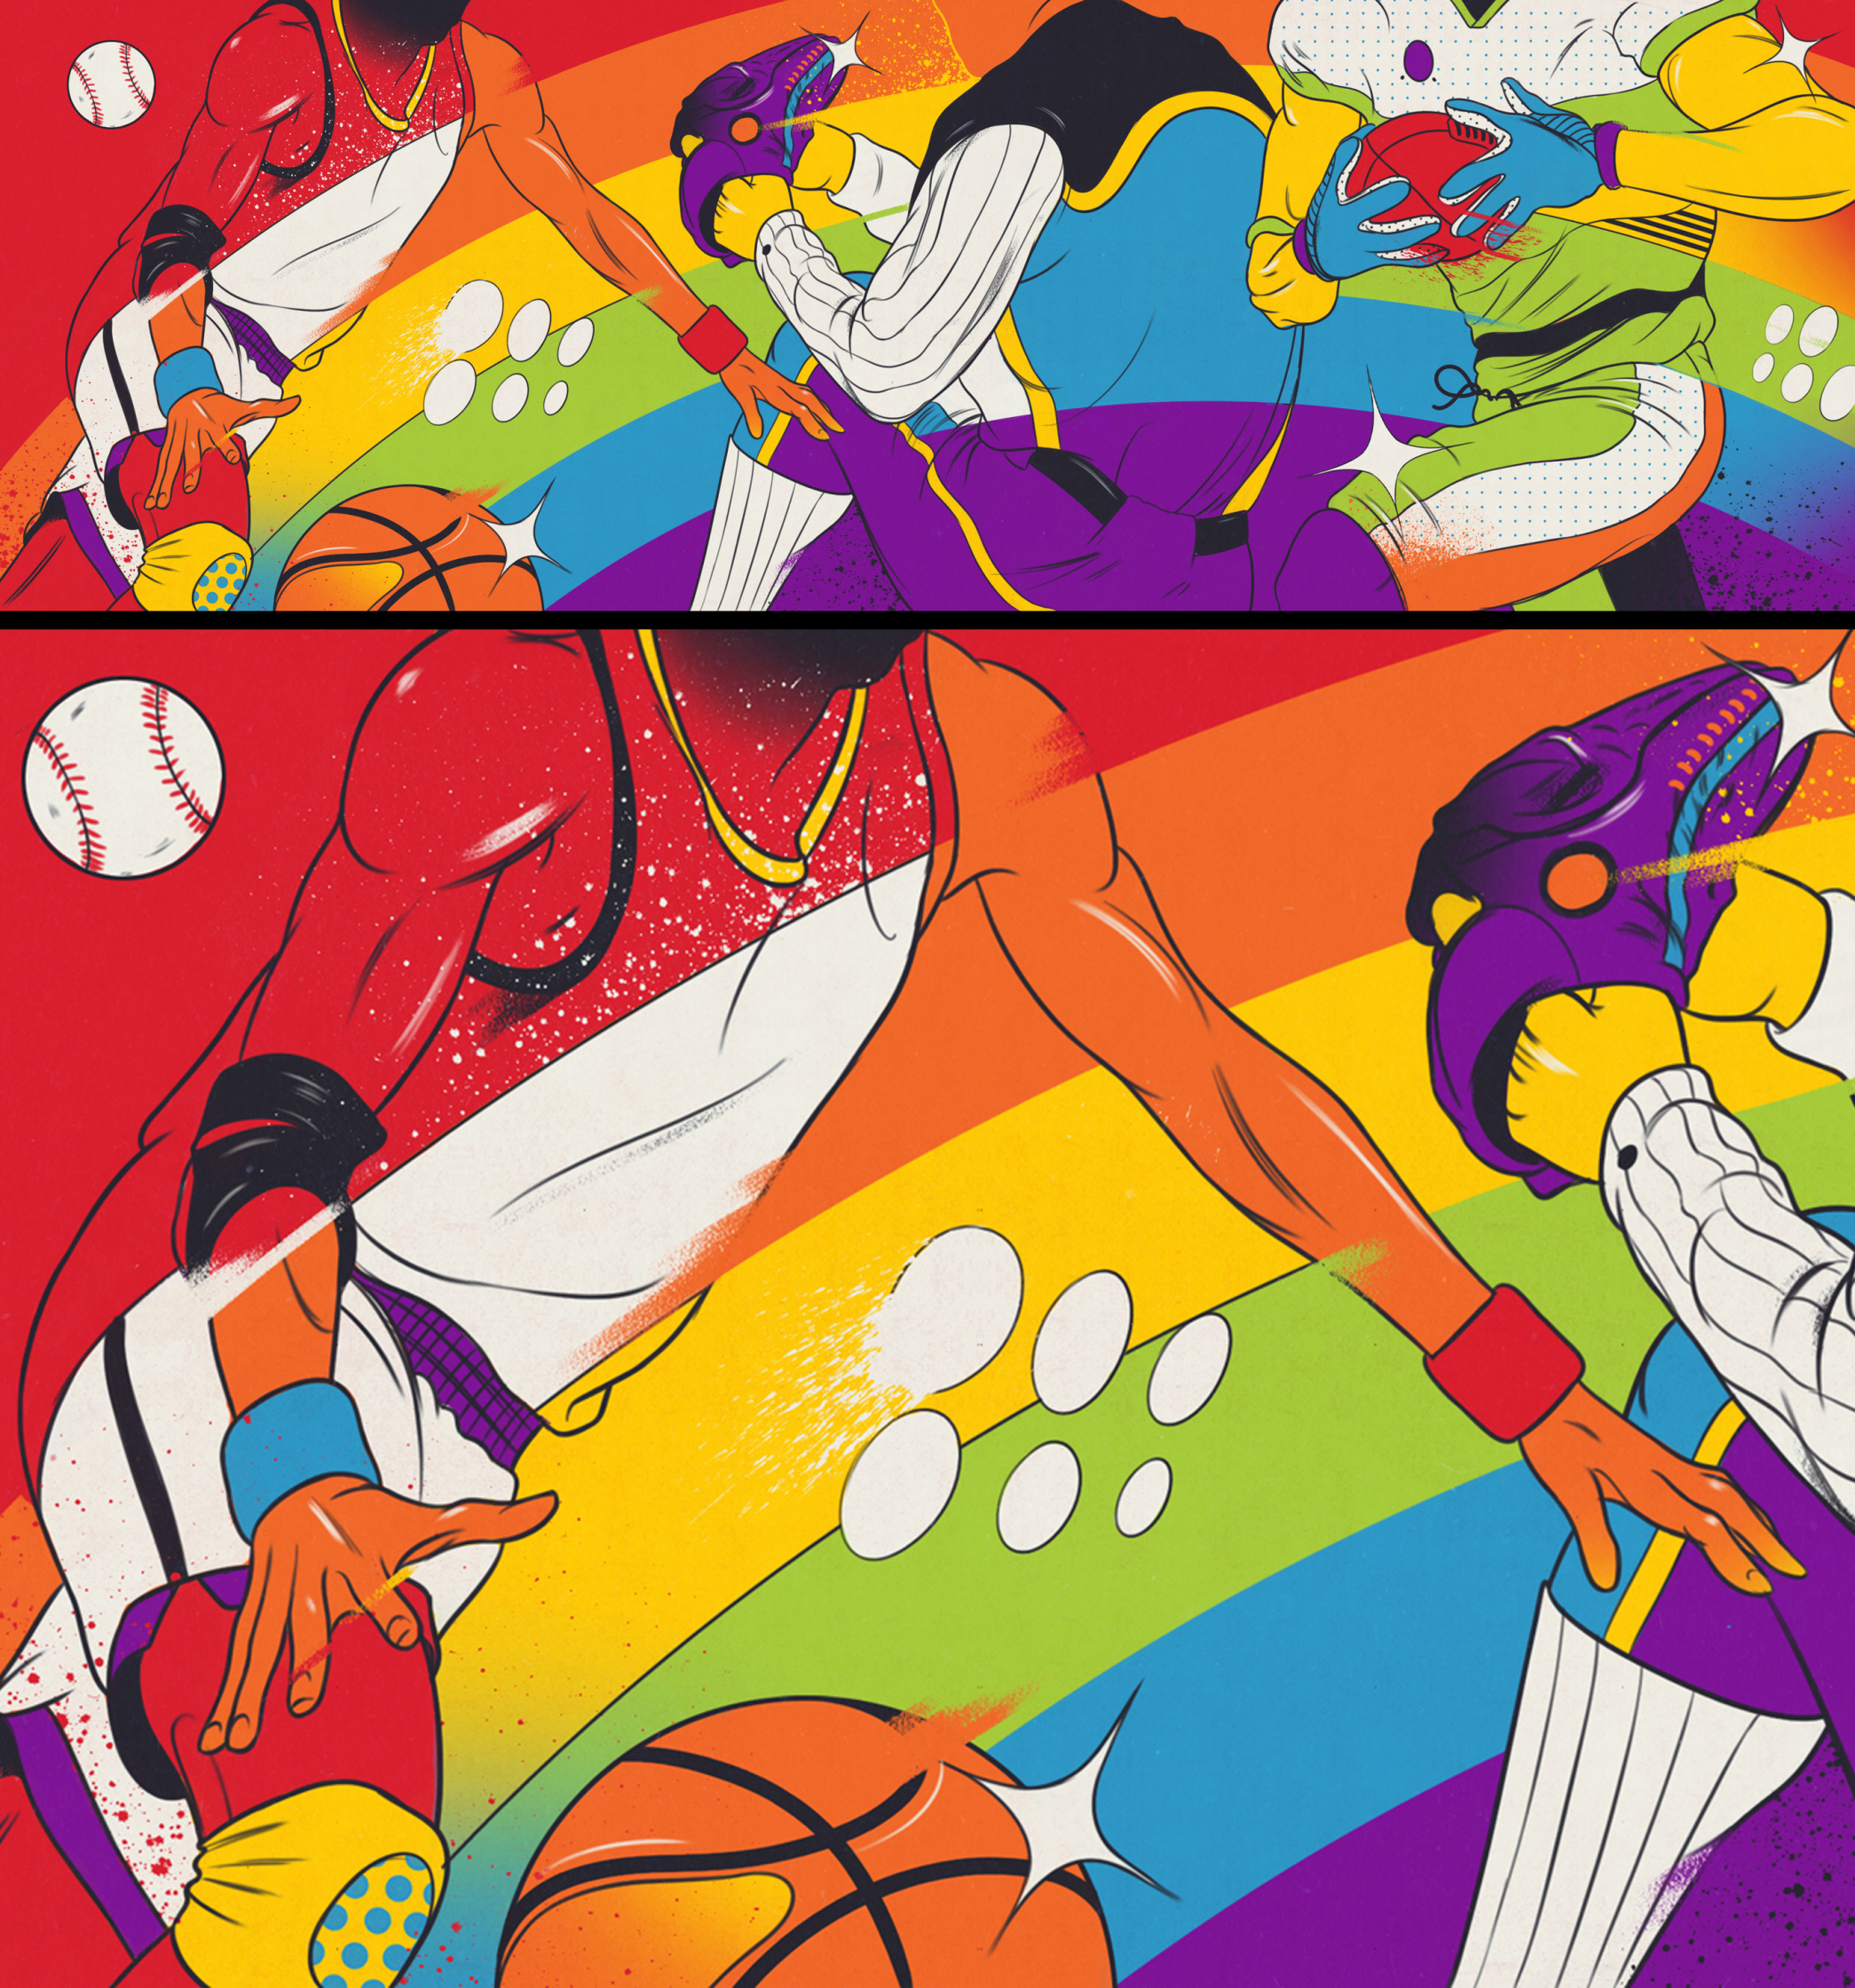 ESPN - The Gay Rights Movement in Sports